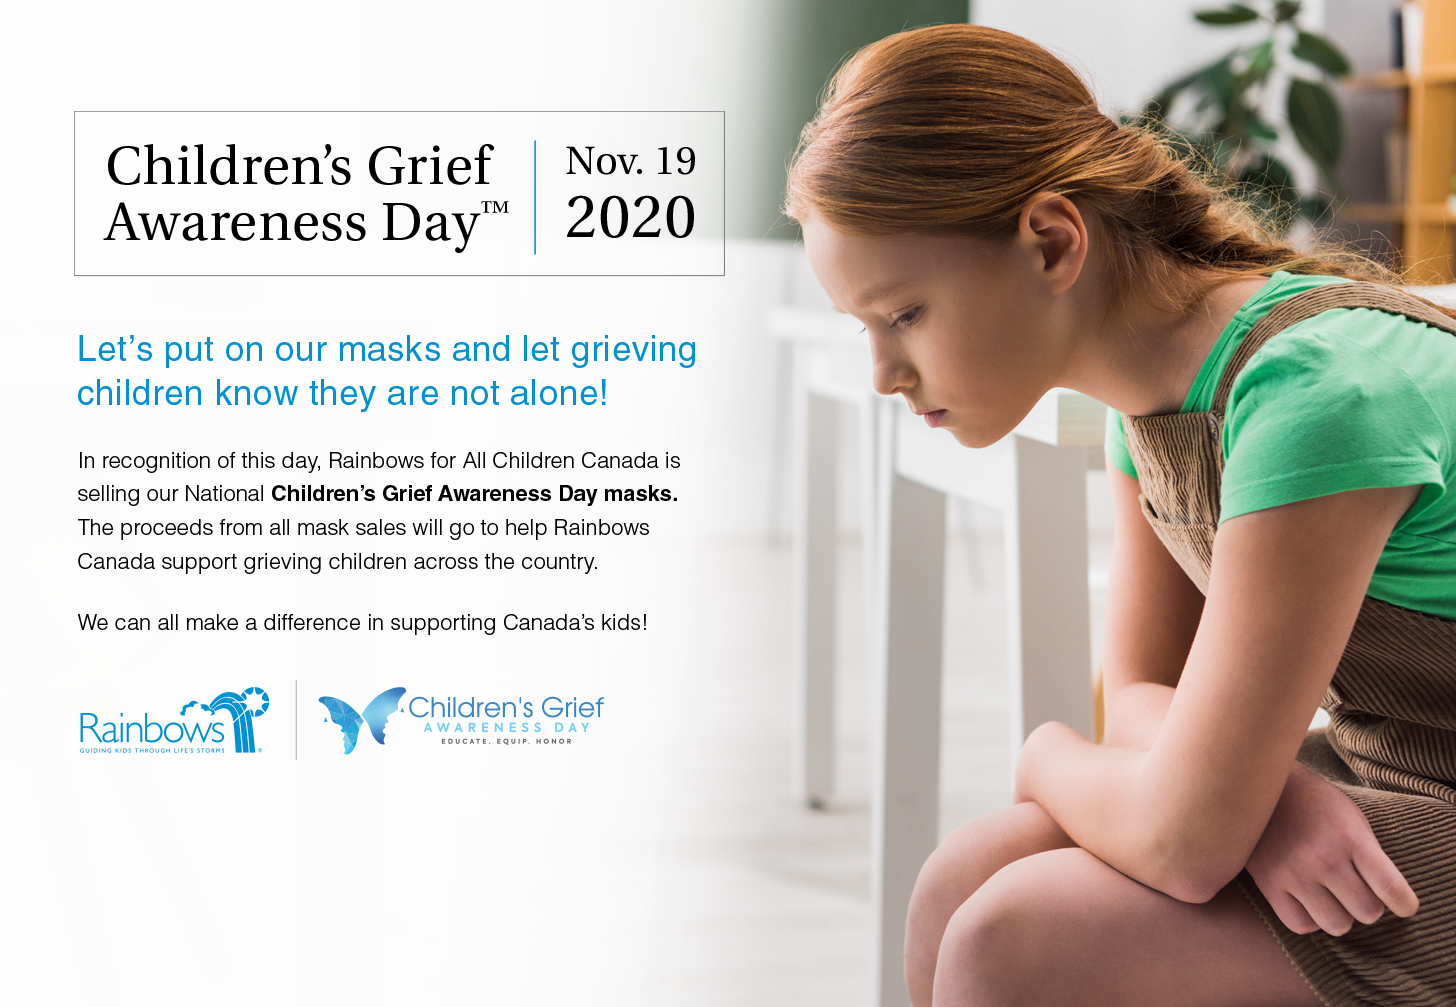 Children's Grief Awareness Day, November 19, 2020. In recognition of this day, Rainbows for All Children Canada is selling our National Children's Grief Awareness Day Masks. Proceeds helping support grieving children across Canada.